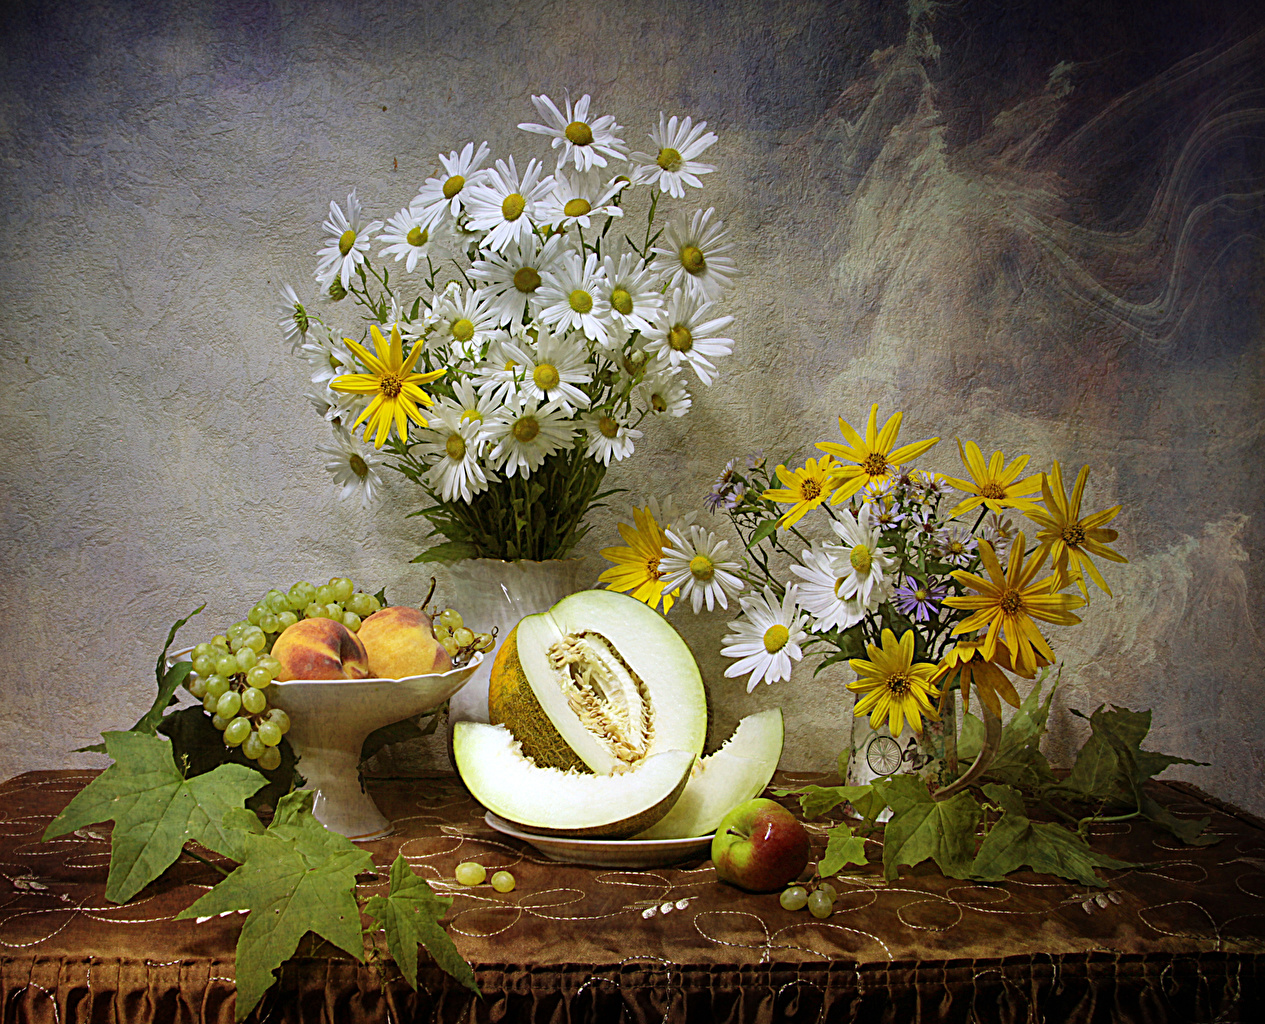 Wallpaper Bouquets Melons Grapes Apples Peaches Flowers Camomiles Food Still-life bouquet flower matricaria